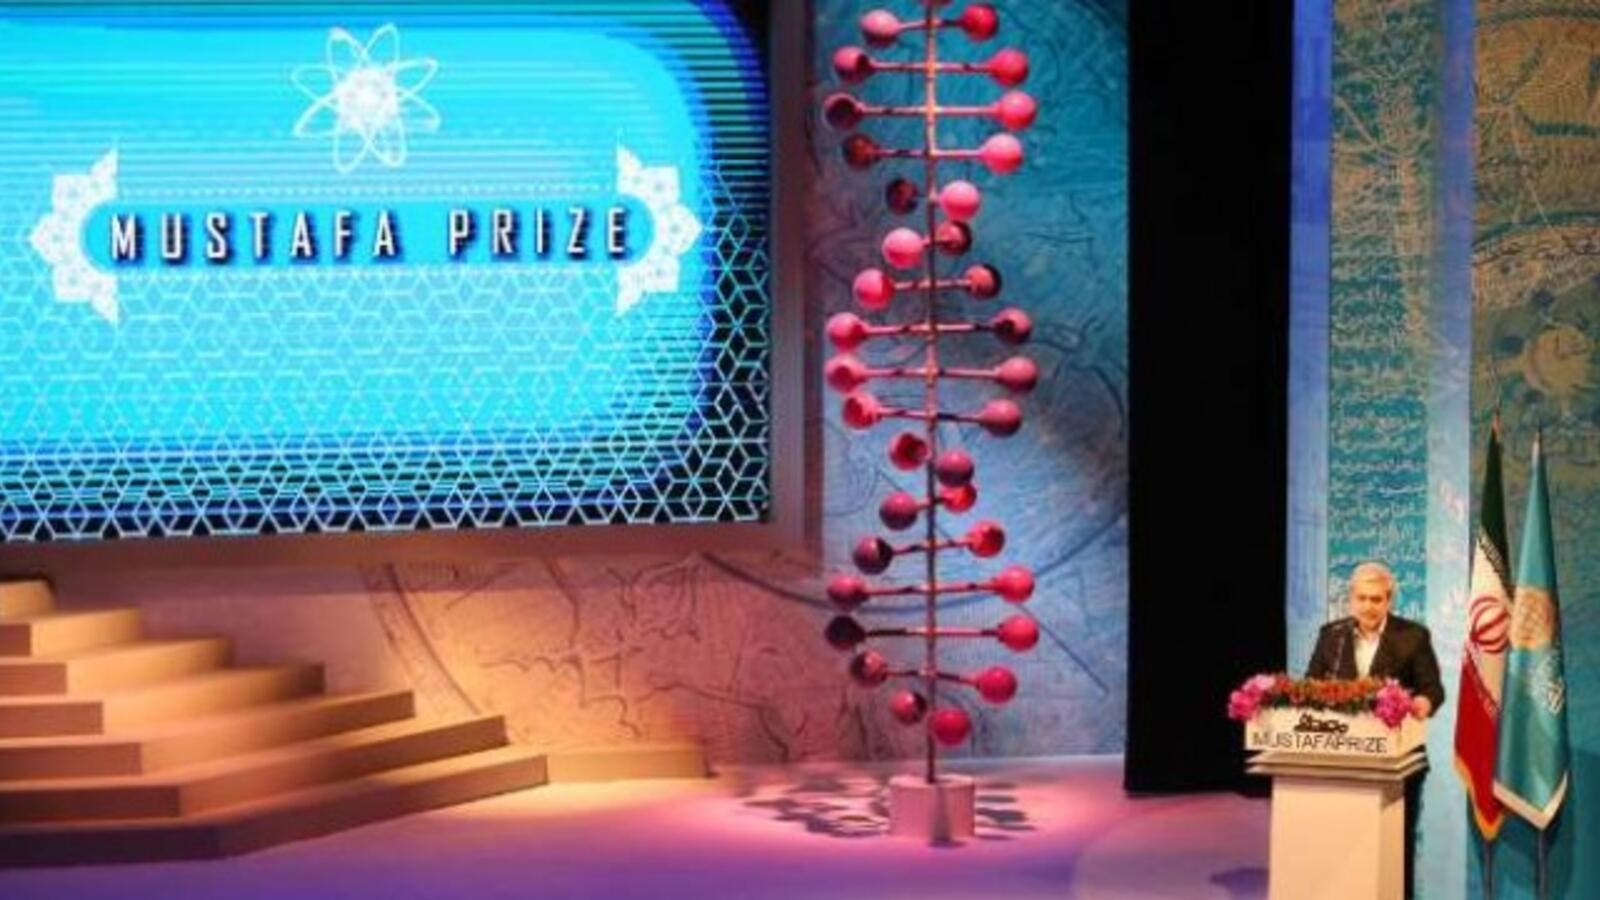 The Mustafa Prize is awarded to the four fields of nanoscience and nanotechnology, bio and medical sciences and technology, information and communication sciences and technology, and the top idea presented by a Muslim scientist. (The Iran Project)